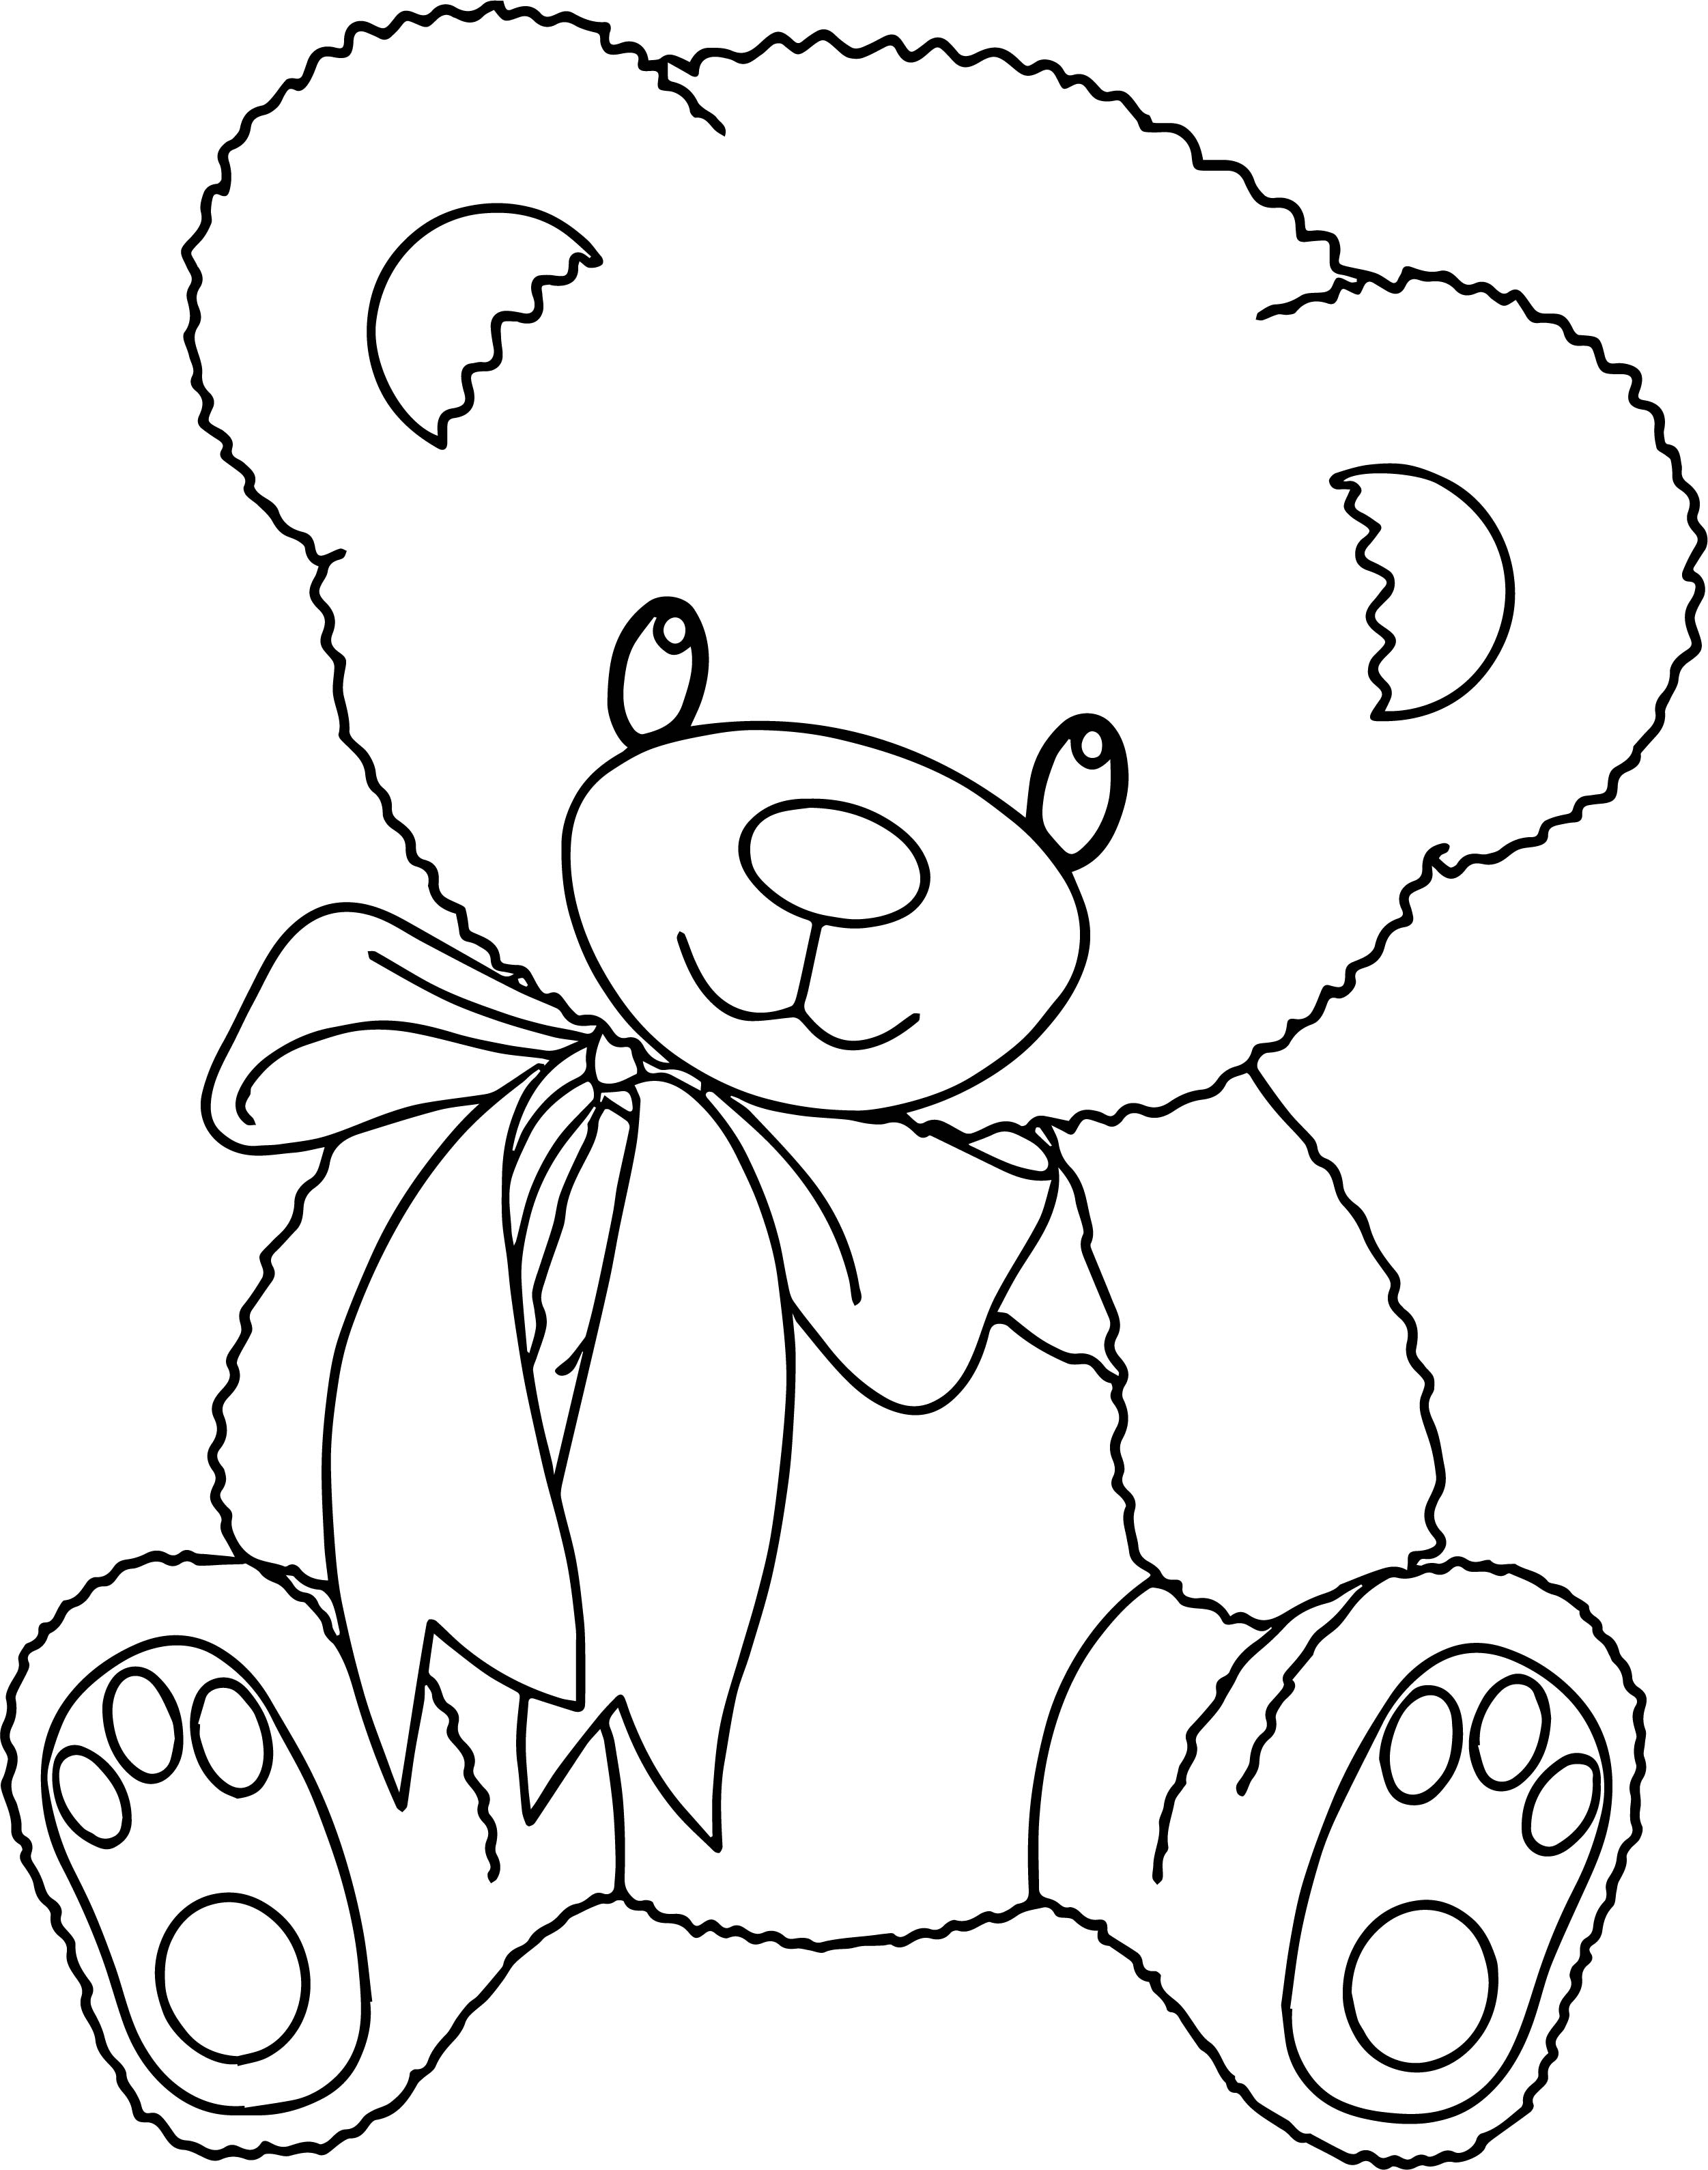 2502x3178 Cute Bear With Heart Coloring Pages